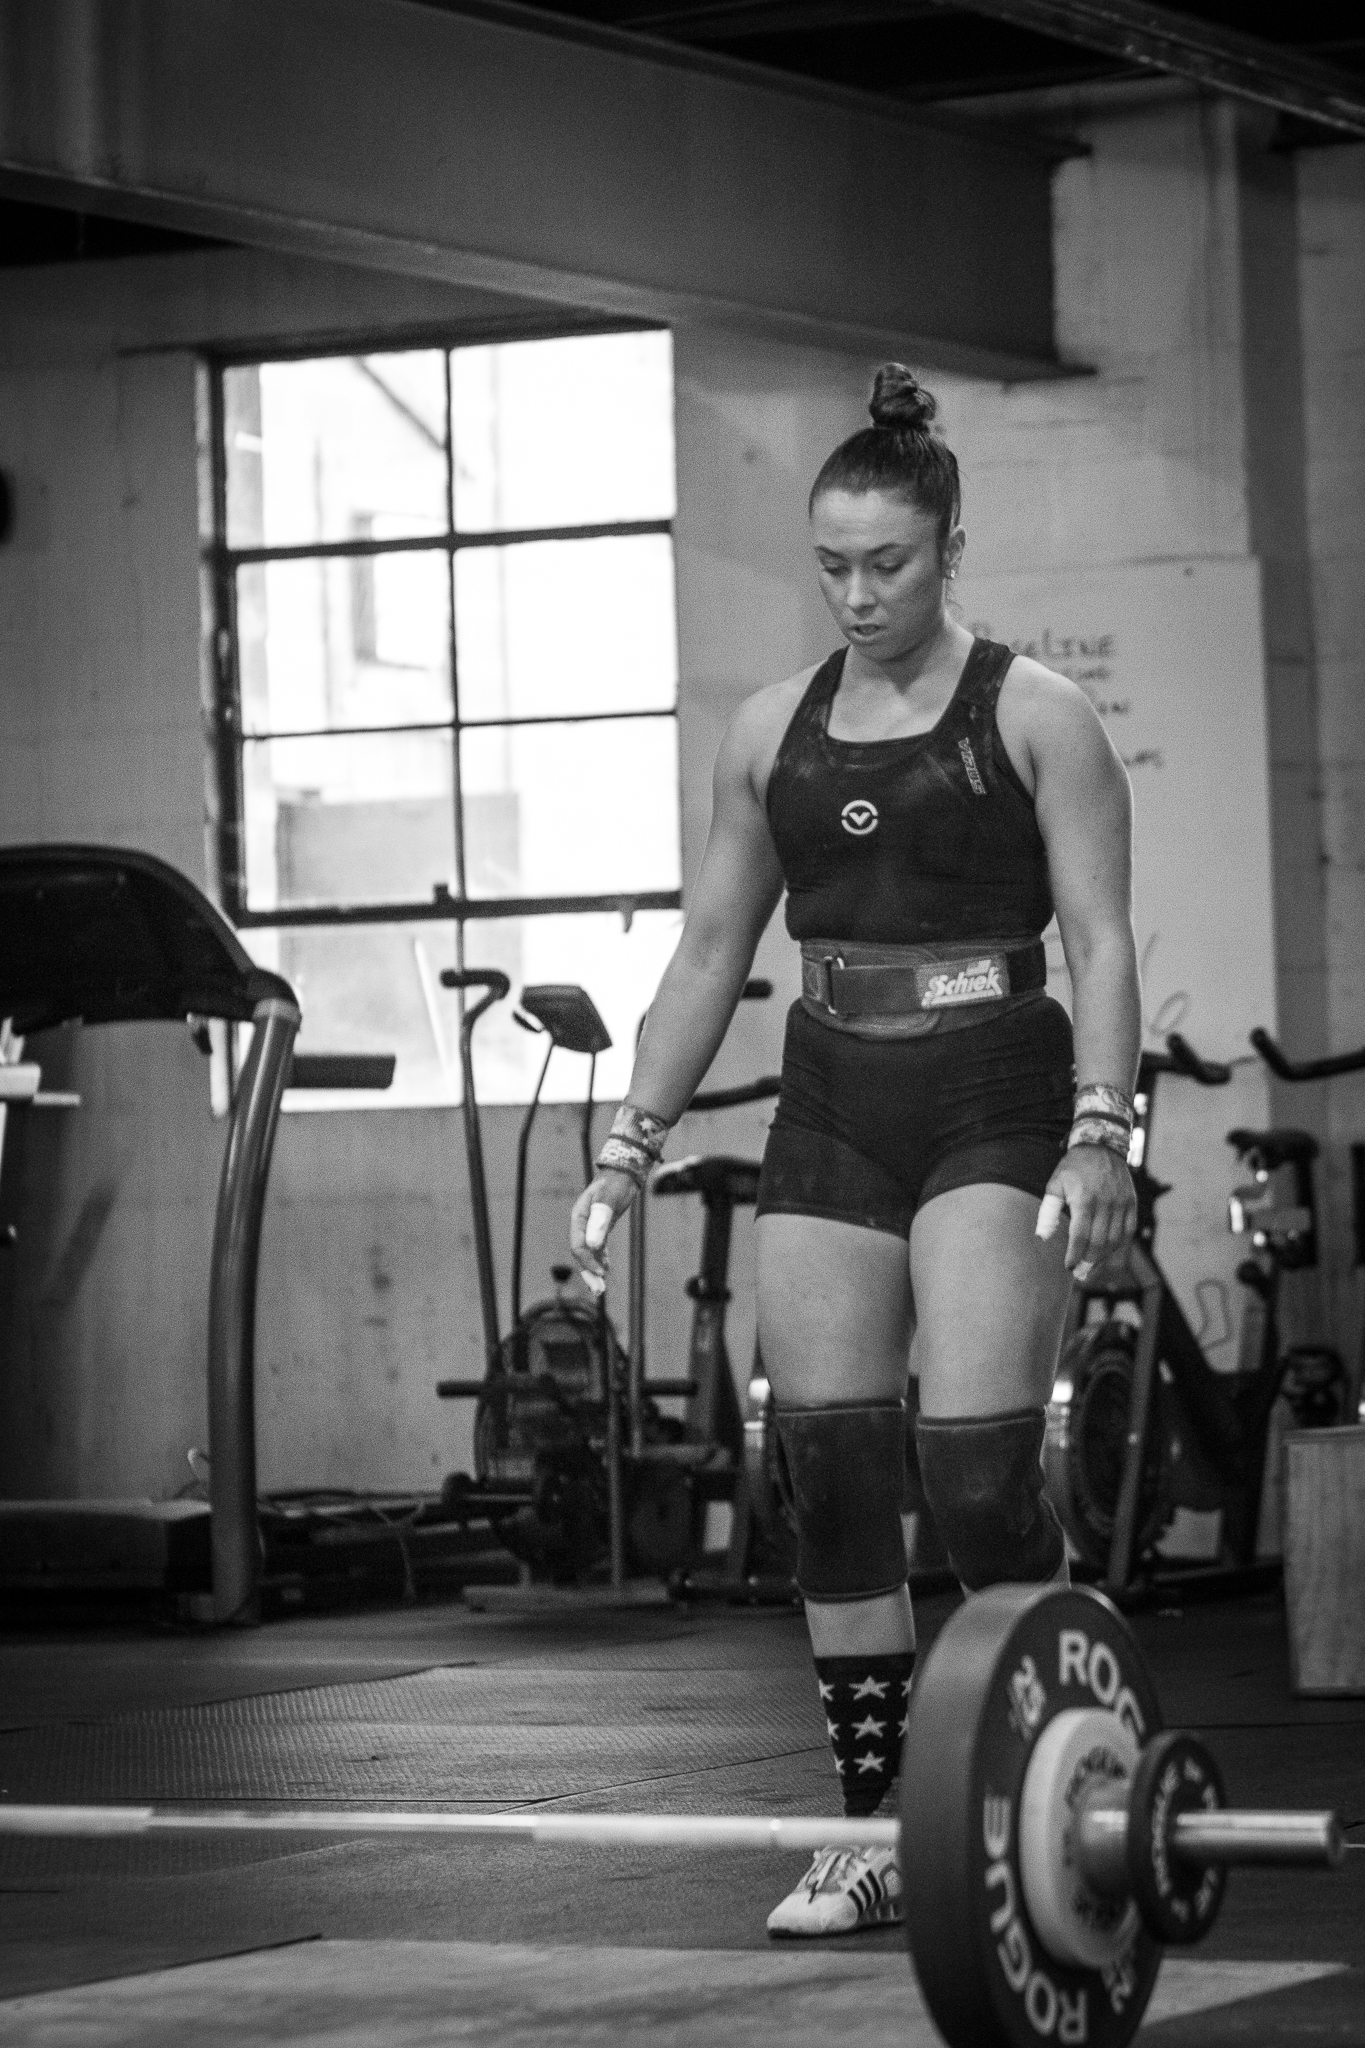 warwick-new-york-intrepid-strength-conditioning-winter-open-weightlifting-meet-weightlifting-photography (12 of 15).jpg